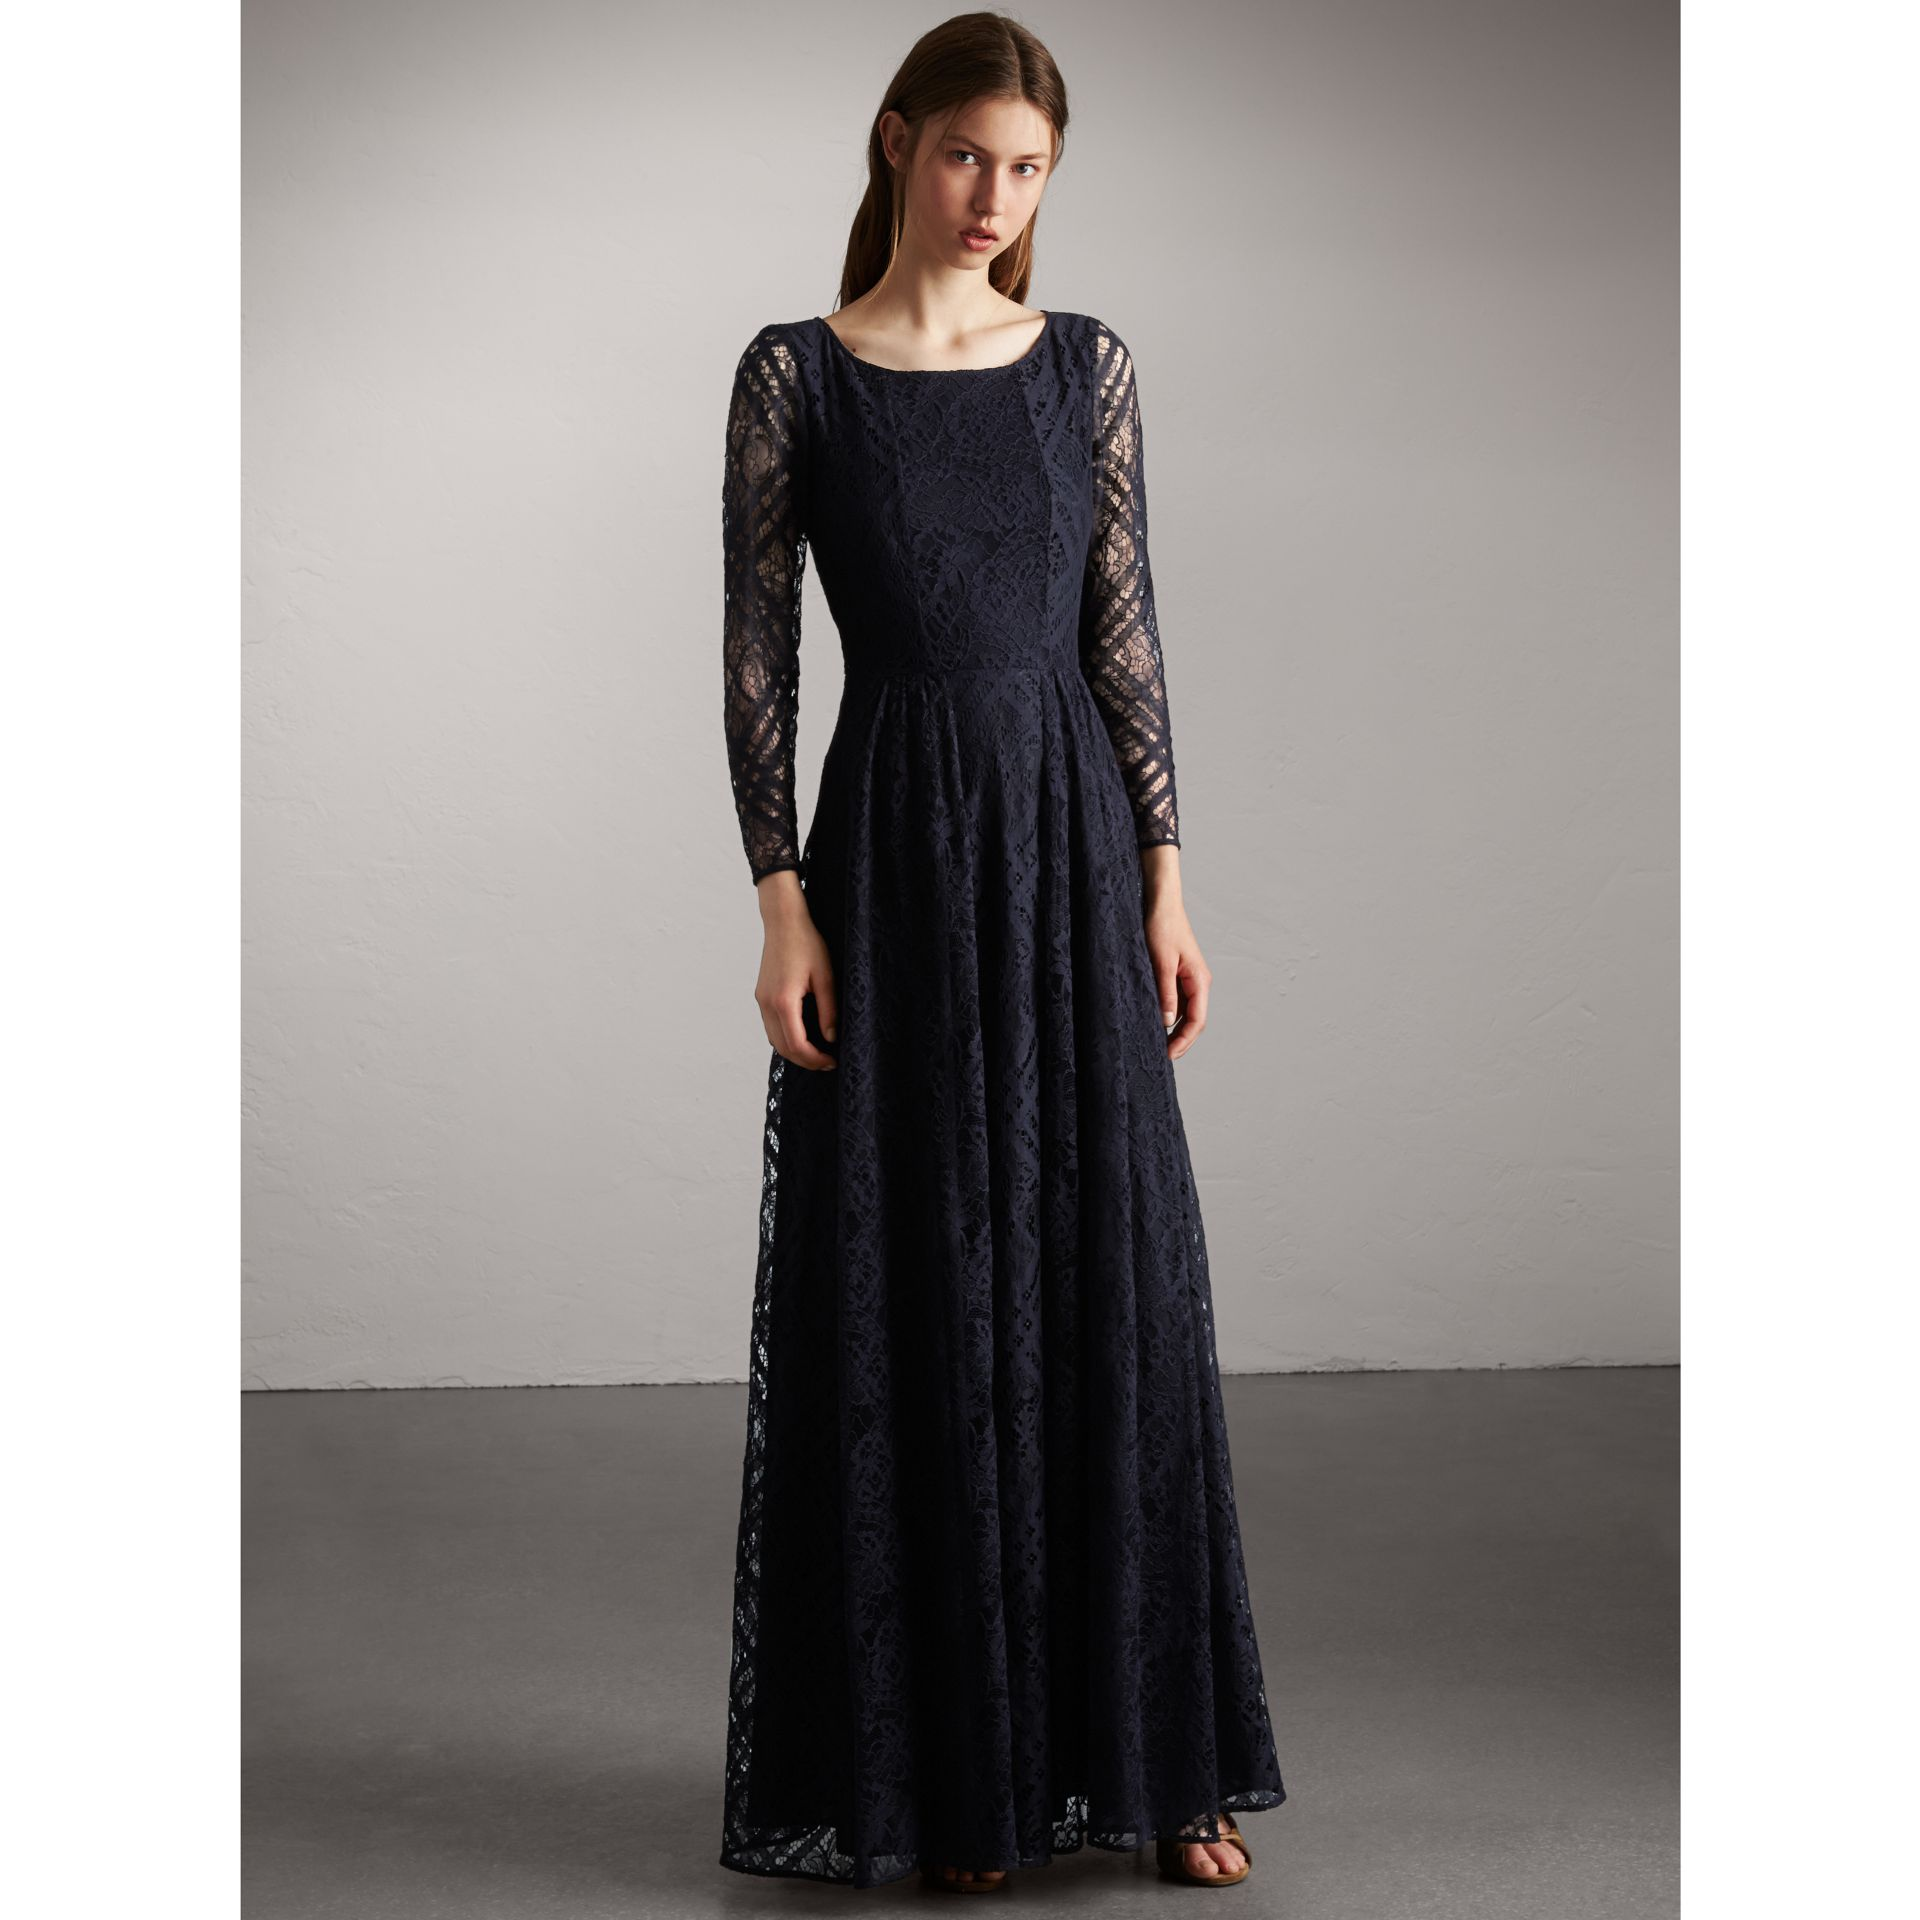 Check Lace Floor-length Dress in Navy - Women | Burberry - gallery image 1